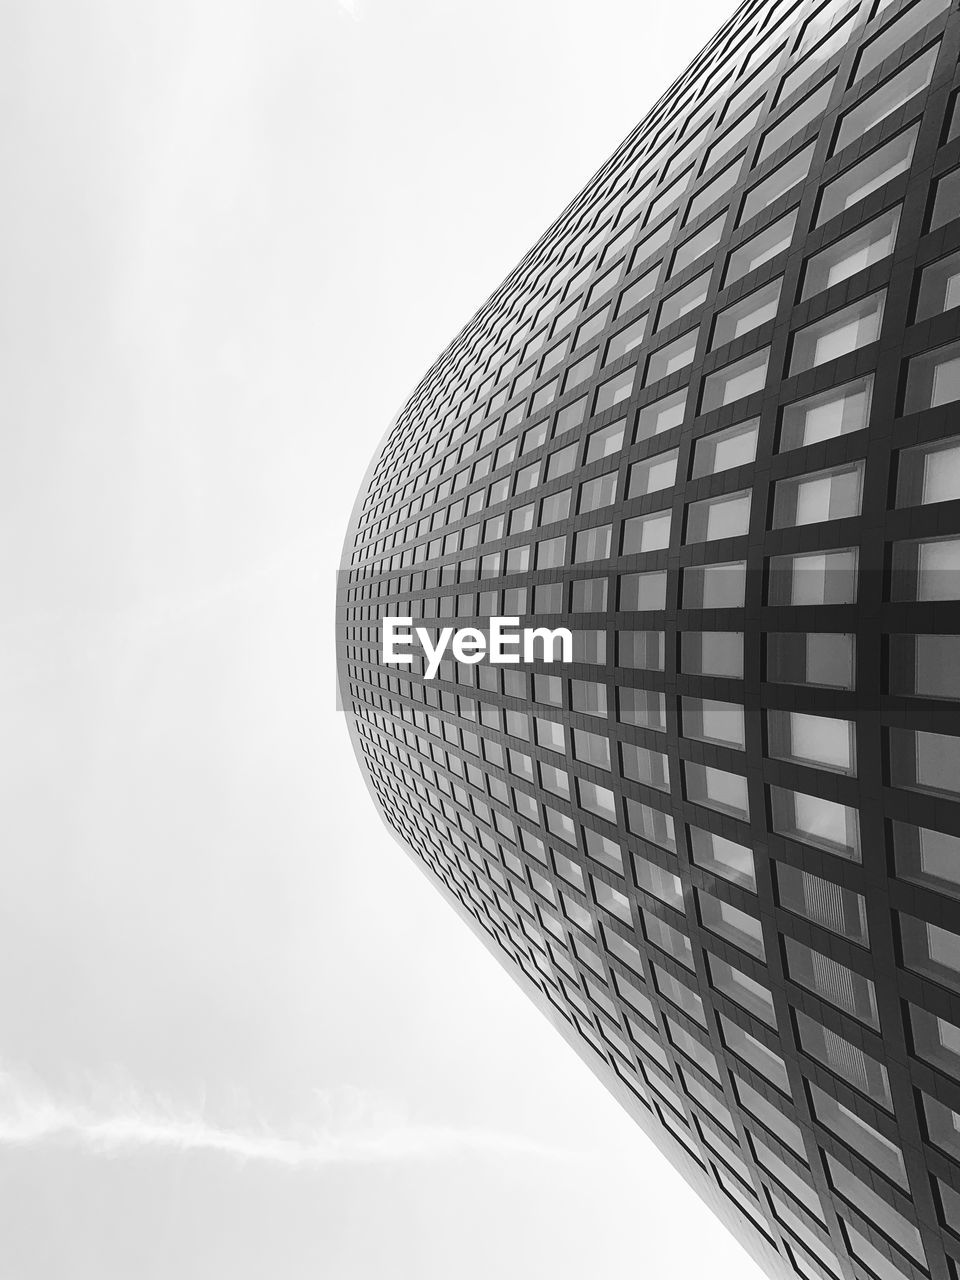 sky, built structure, low angle view, building exterior, architecture, modern, tall - high, office building exterior, no people, day, cloud - sky, pattern, building, nature, office, skyscraper, city, glass - material, outdoors, tower, directly below